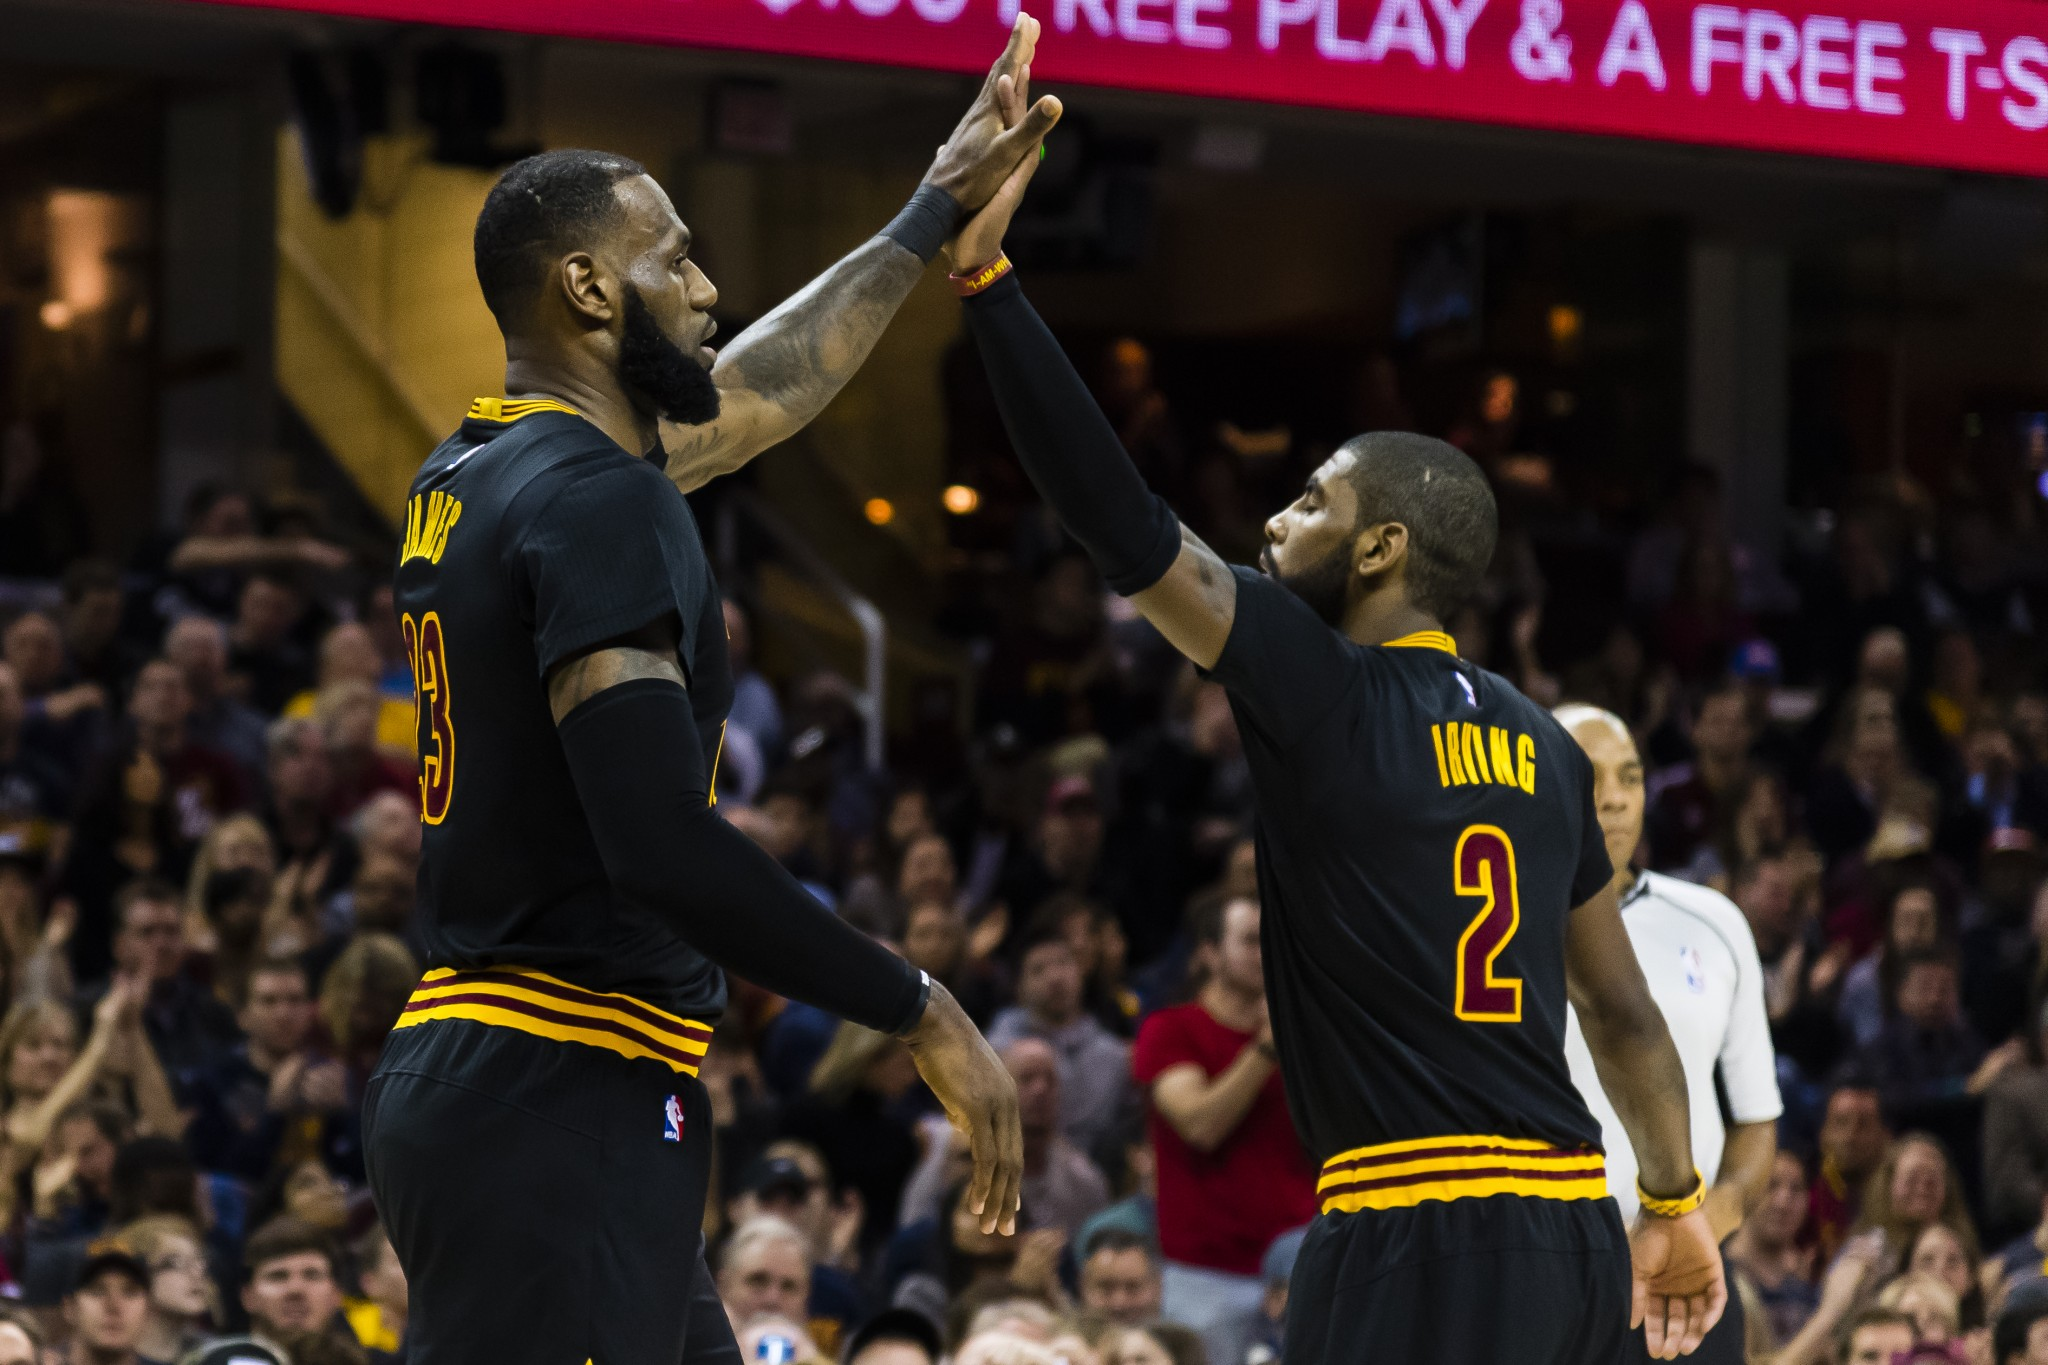 LeBron James and Kyrie Irving will have to shoulder an even bigger burden in Kevin Love's absence. (Getty Images)